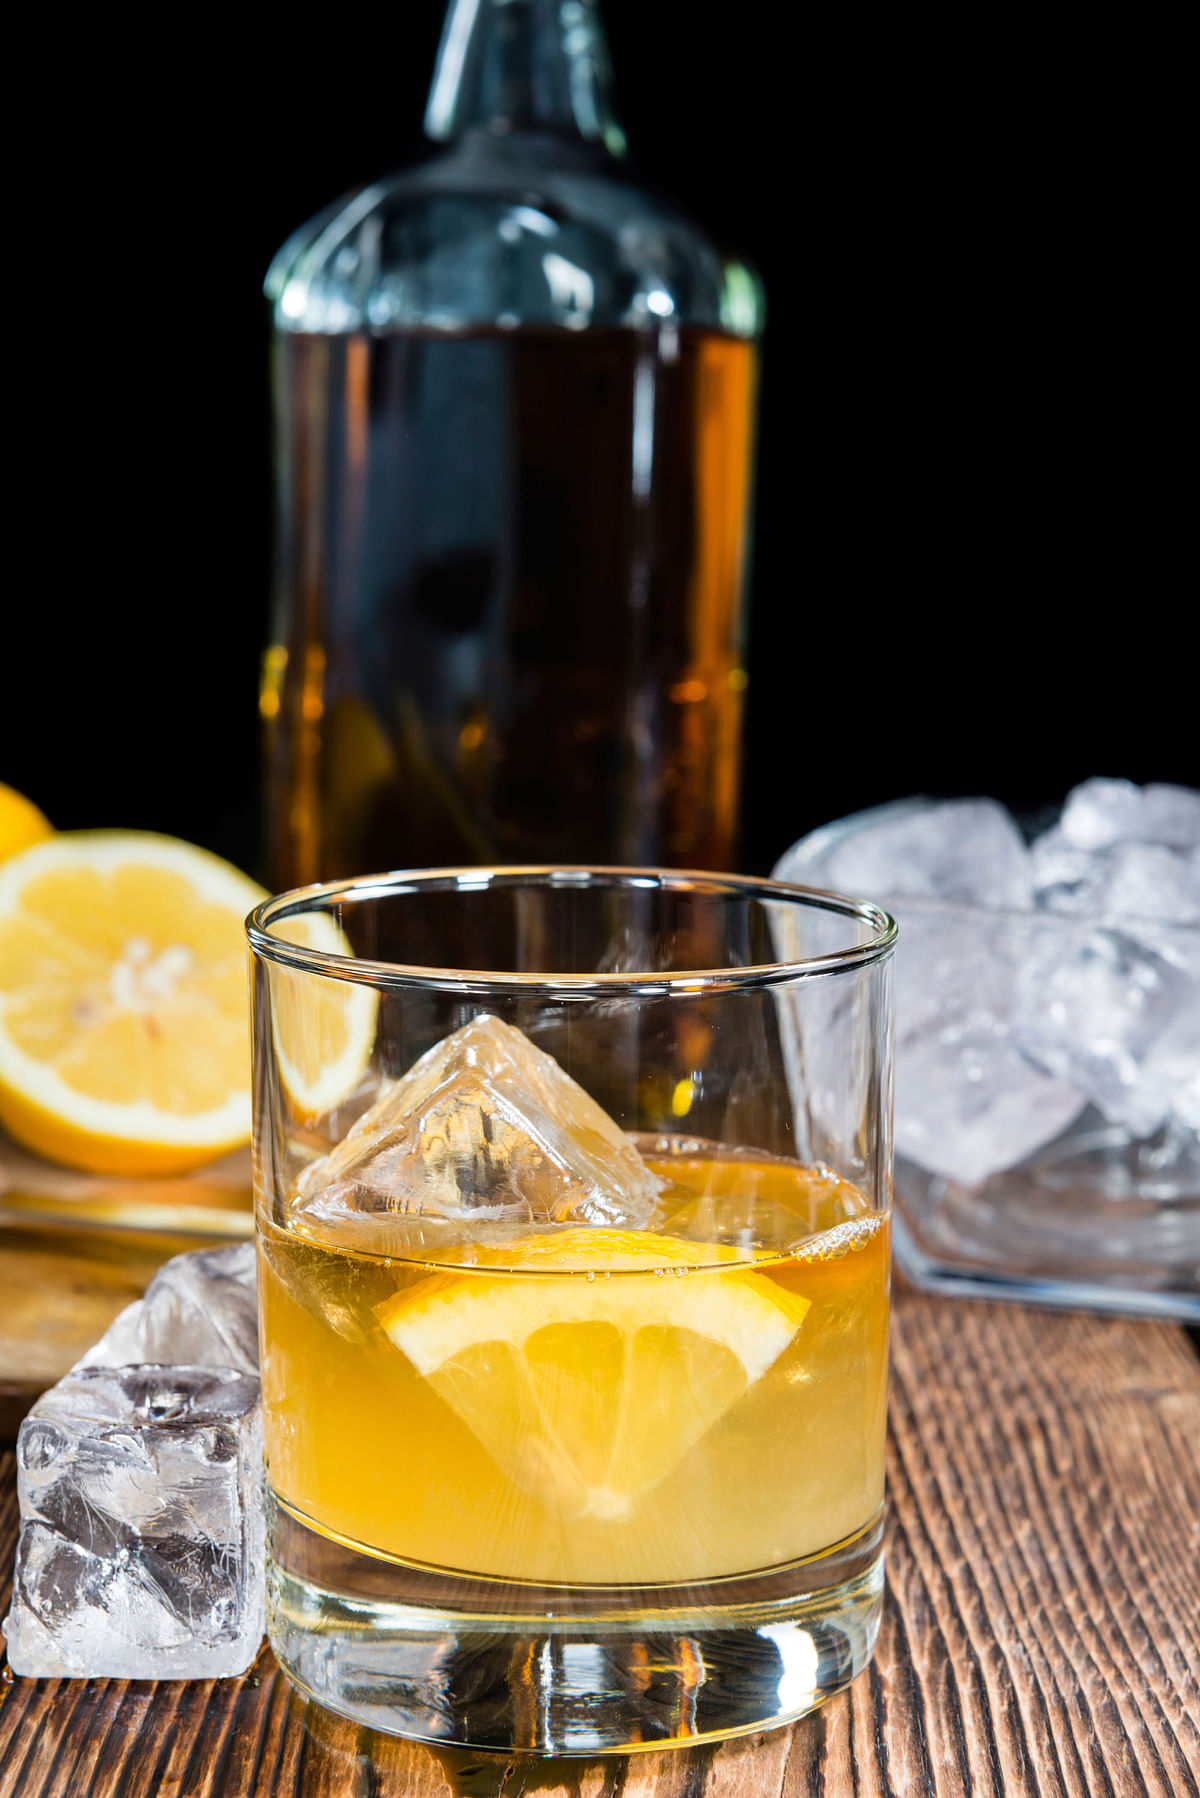 The whiskey sour will make you anything but sour. (Photo: iStockphoto)